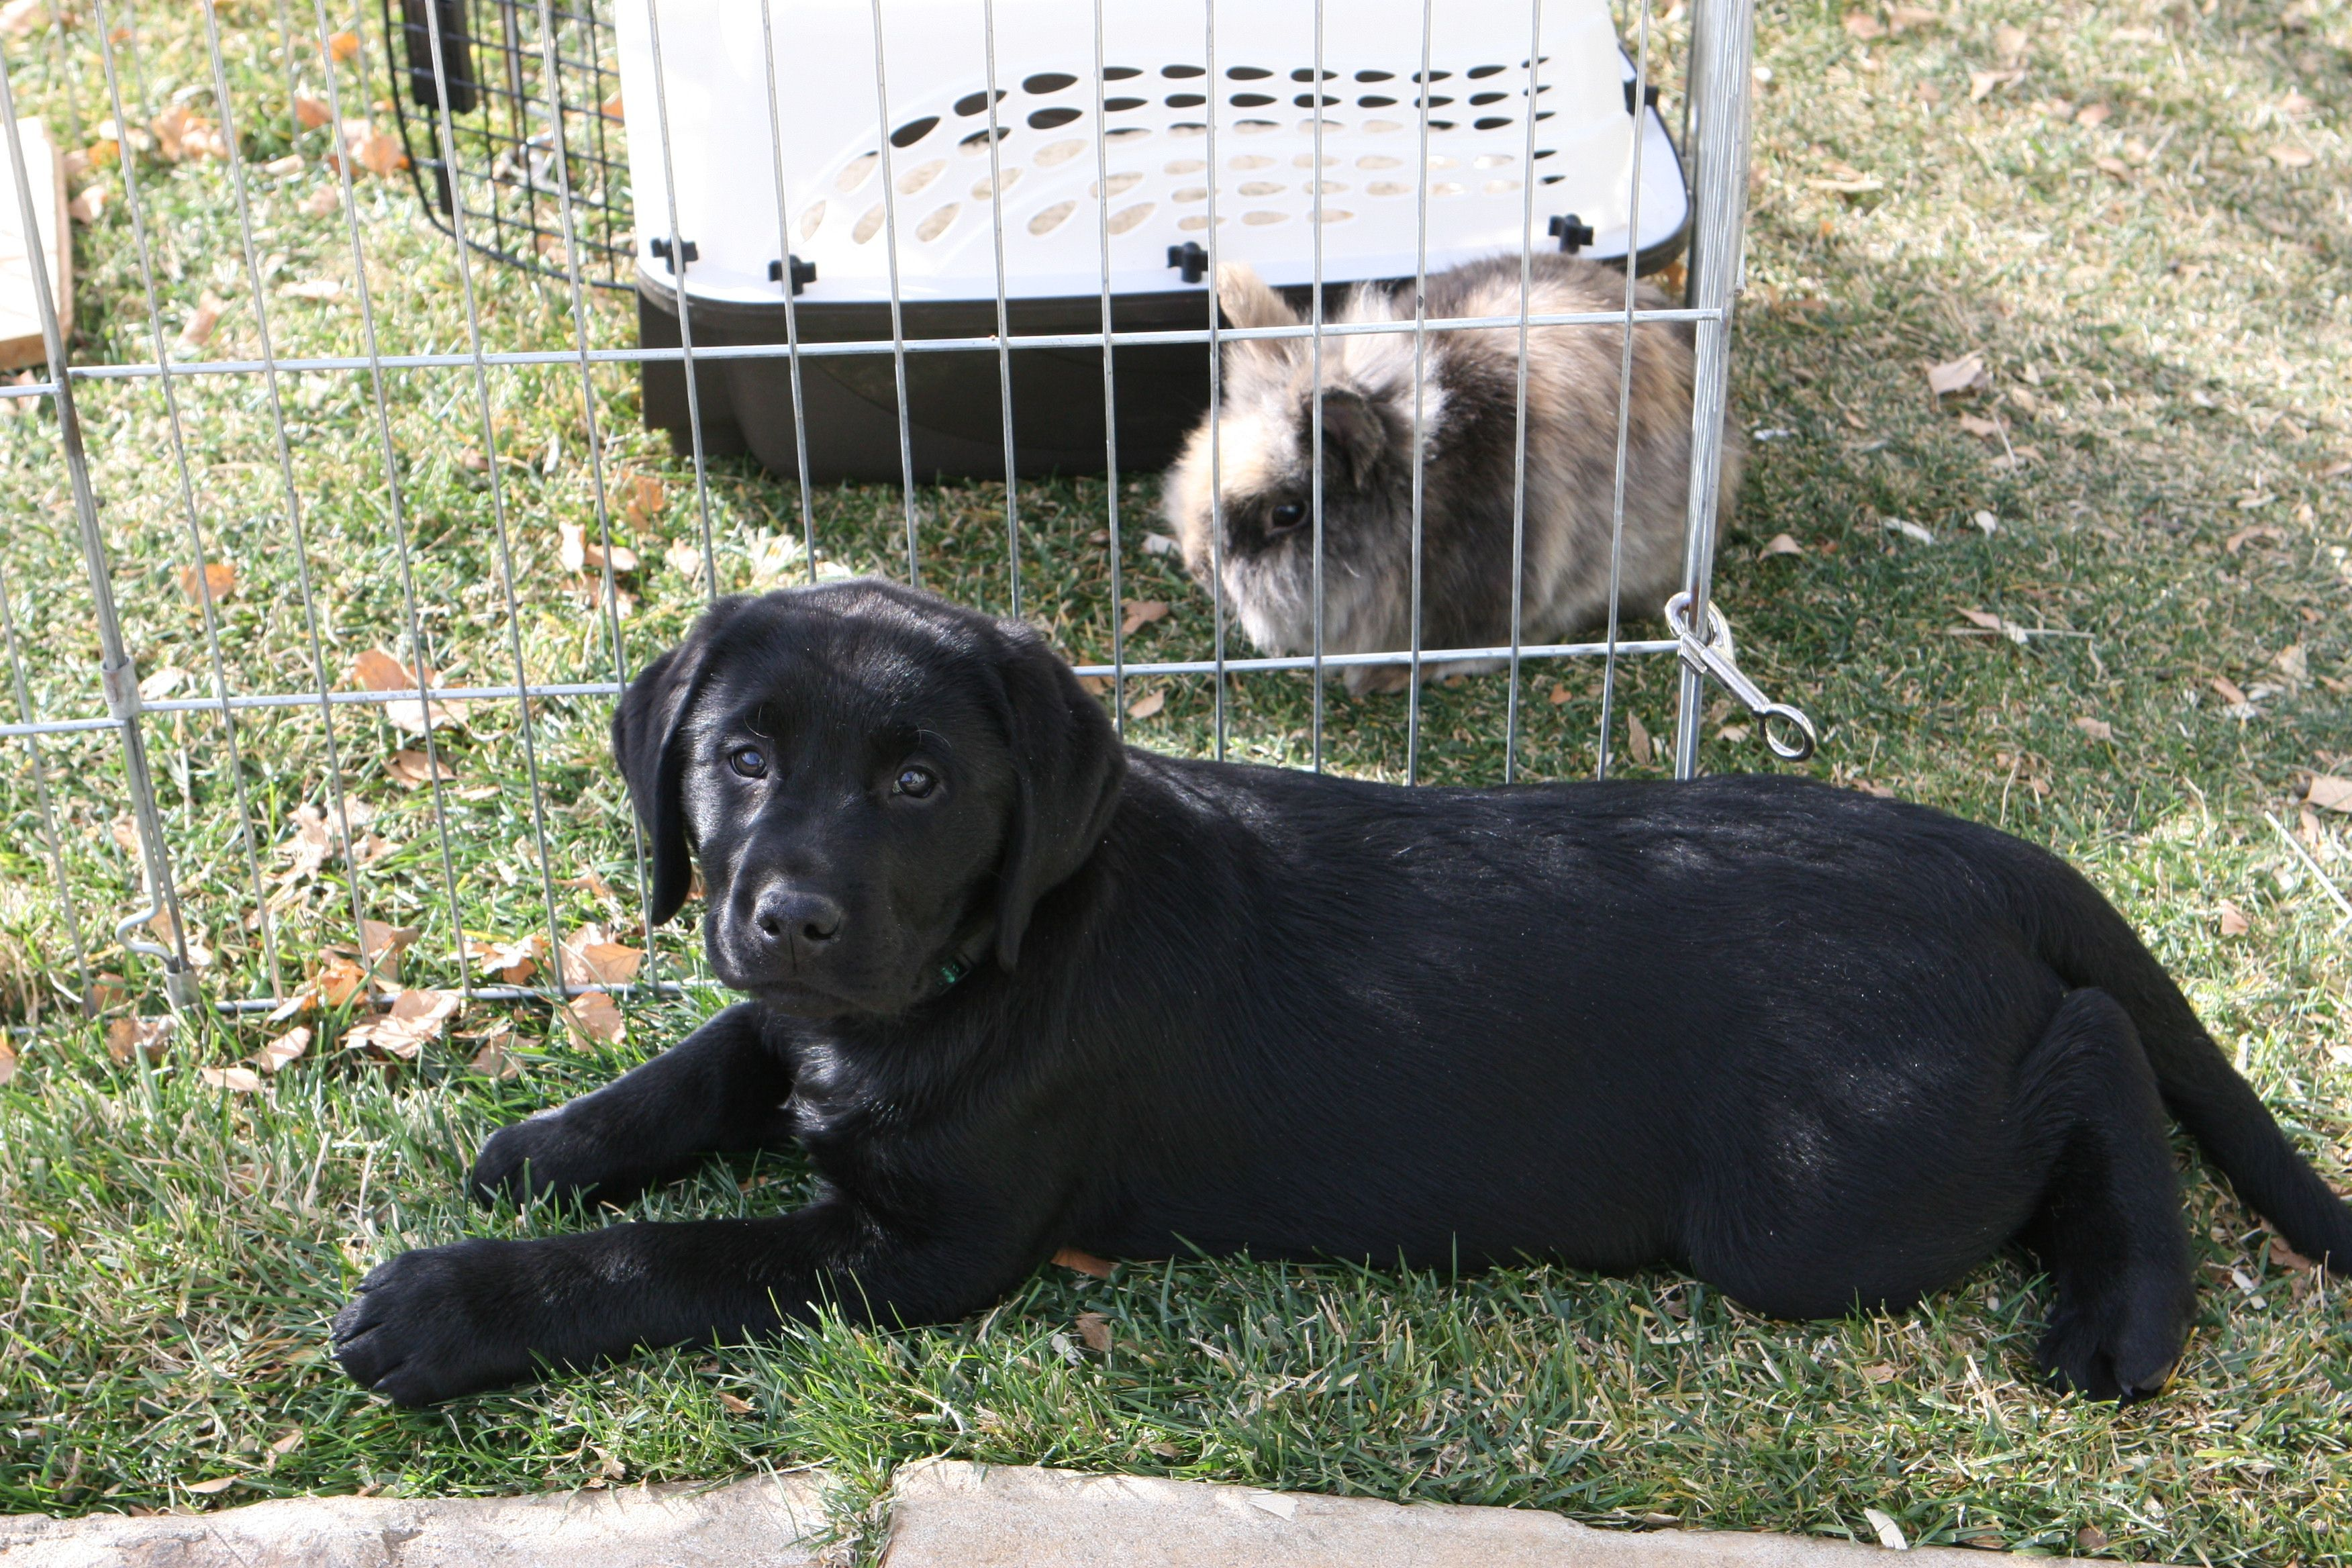 Pin By Julie Shemanski On Love Our Pets Lab Dogs Black Lab Puppies Therapy Animals